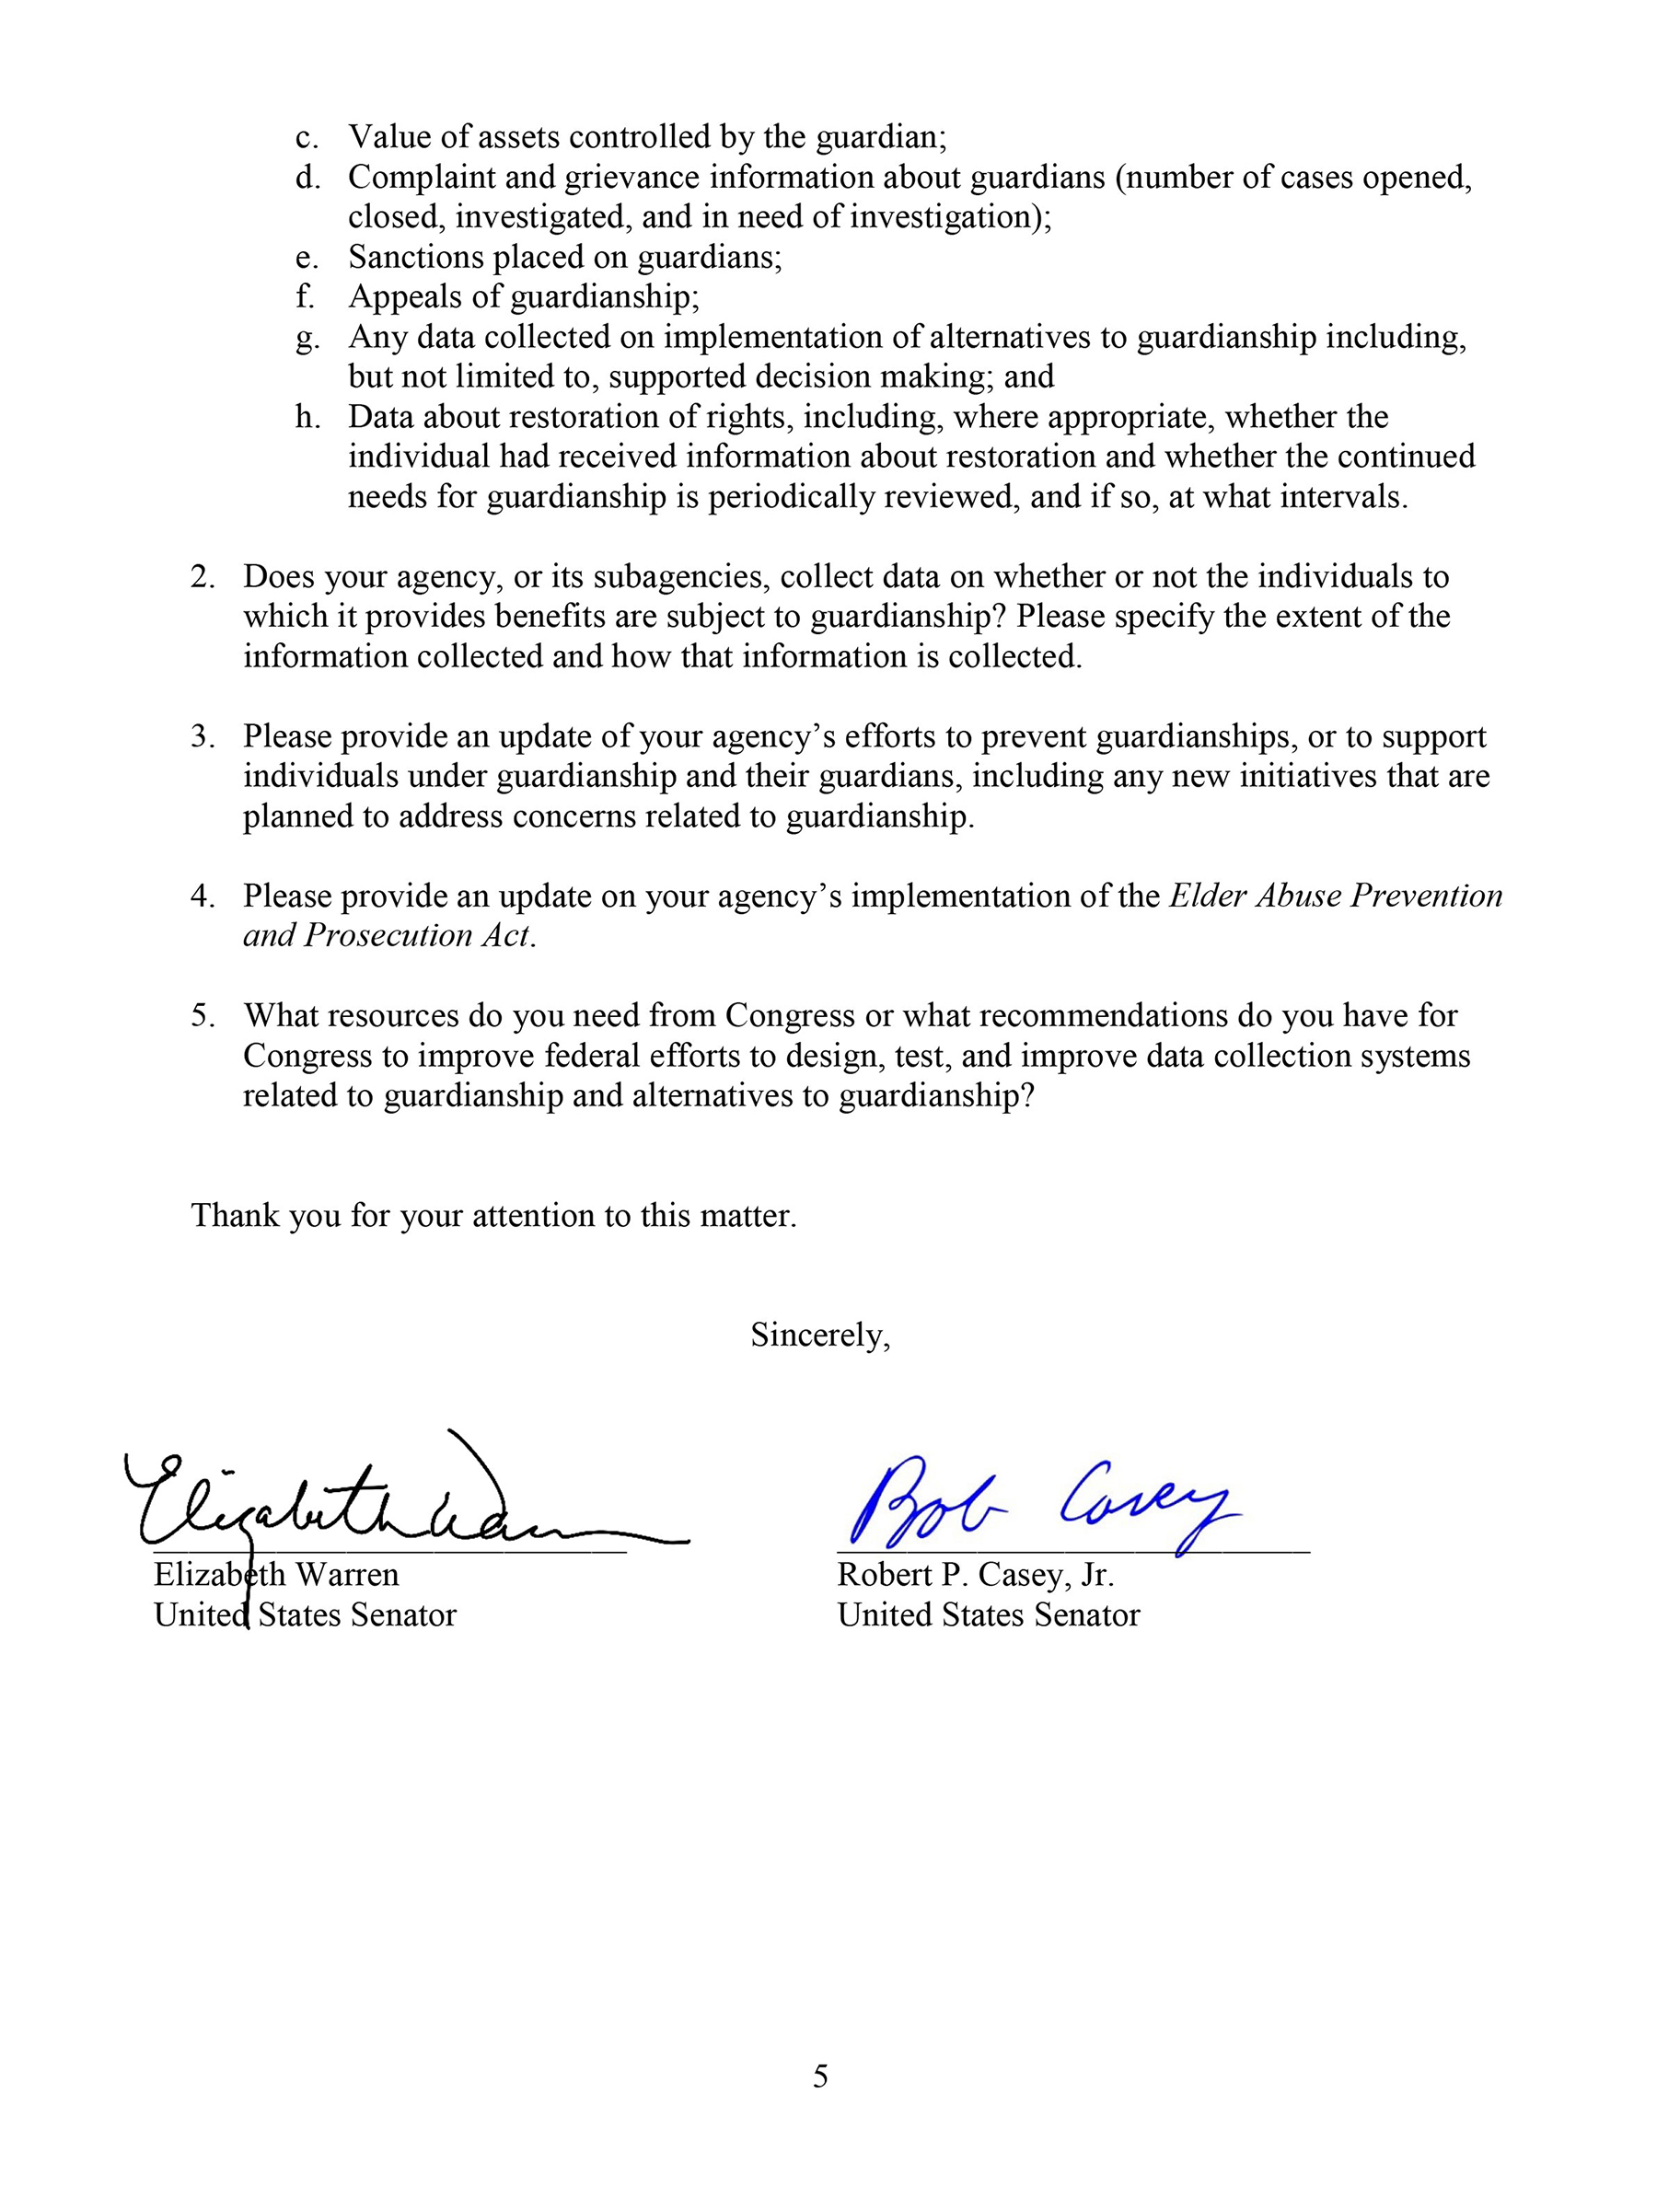 A letter Sens. Elizabeth Warren and Bob Casey sent to HHS and DOJ calling for more data on guardianships in the U.S.